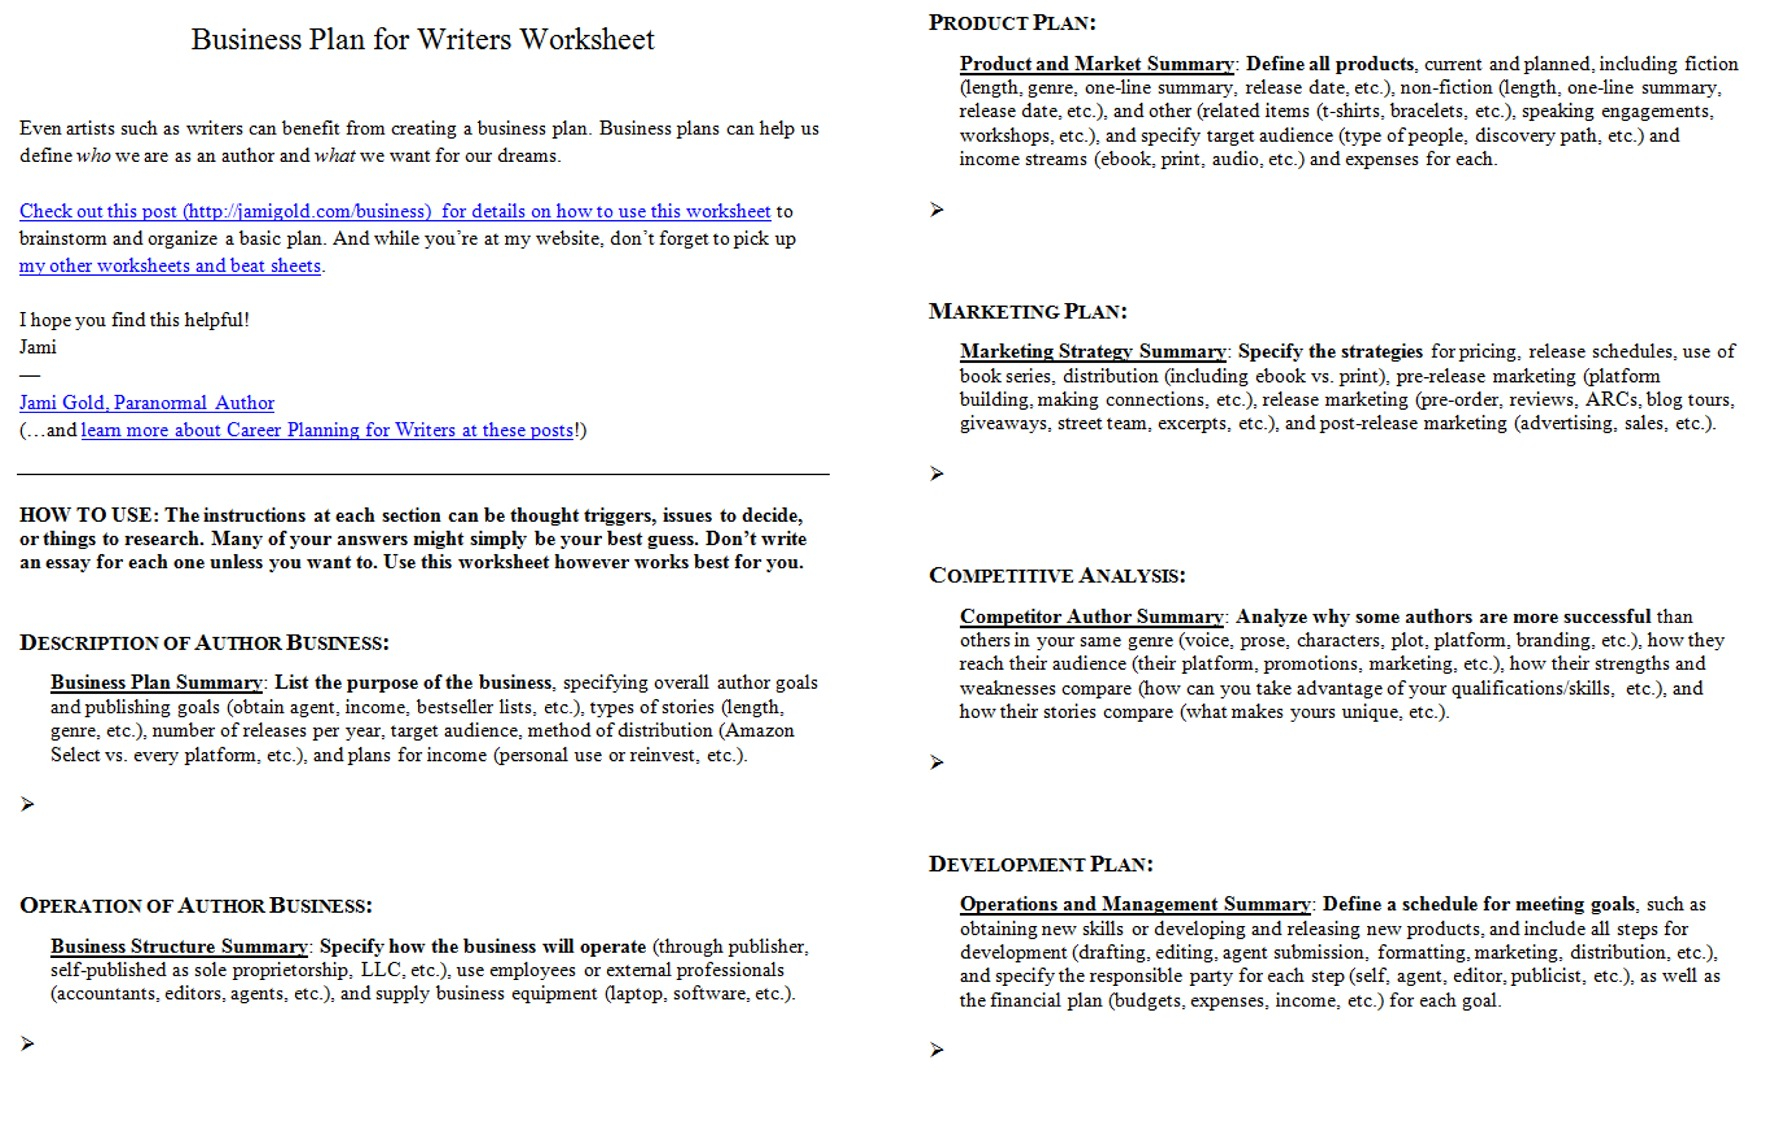 Weirdmailus  Terrific Worksheets For Writers  Jami Gold Paranormal Author With Licious Screen Shot Of Both Pages Of The Business Plan For Writers Worksheet With Delightful  Worksheet Also Geometry Angle Worksheets In Addition First Grade Capitalization And Punctuation Worksheets And Slope Worksheet  As Well As Saxon Math Kindergarten Worksheets Additionally Weather Map Worksheets Printable From Jamigoldcom With Weirdmailus  Licious Worksheets For Writers  Jami Gold Paranormal Author With Delightful Screen Shot Of Both Pages Of The Business Plan For Writers Worksheet And Terrific  Worksheet Also Geometry Angle Worksheets In Addition First Grade Capitalization And Punctuation Worksheets From Jamigoldcom